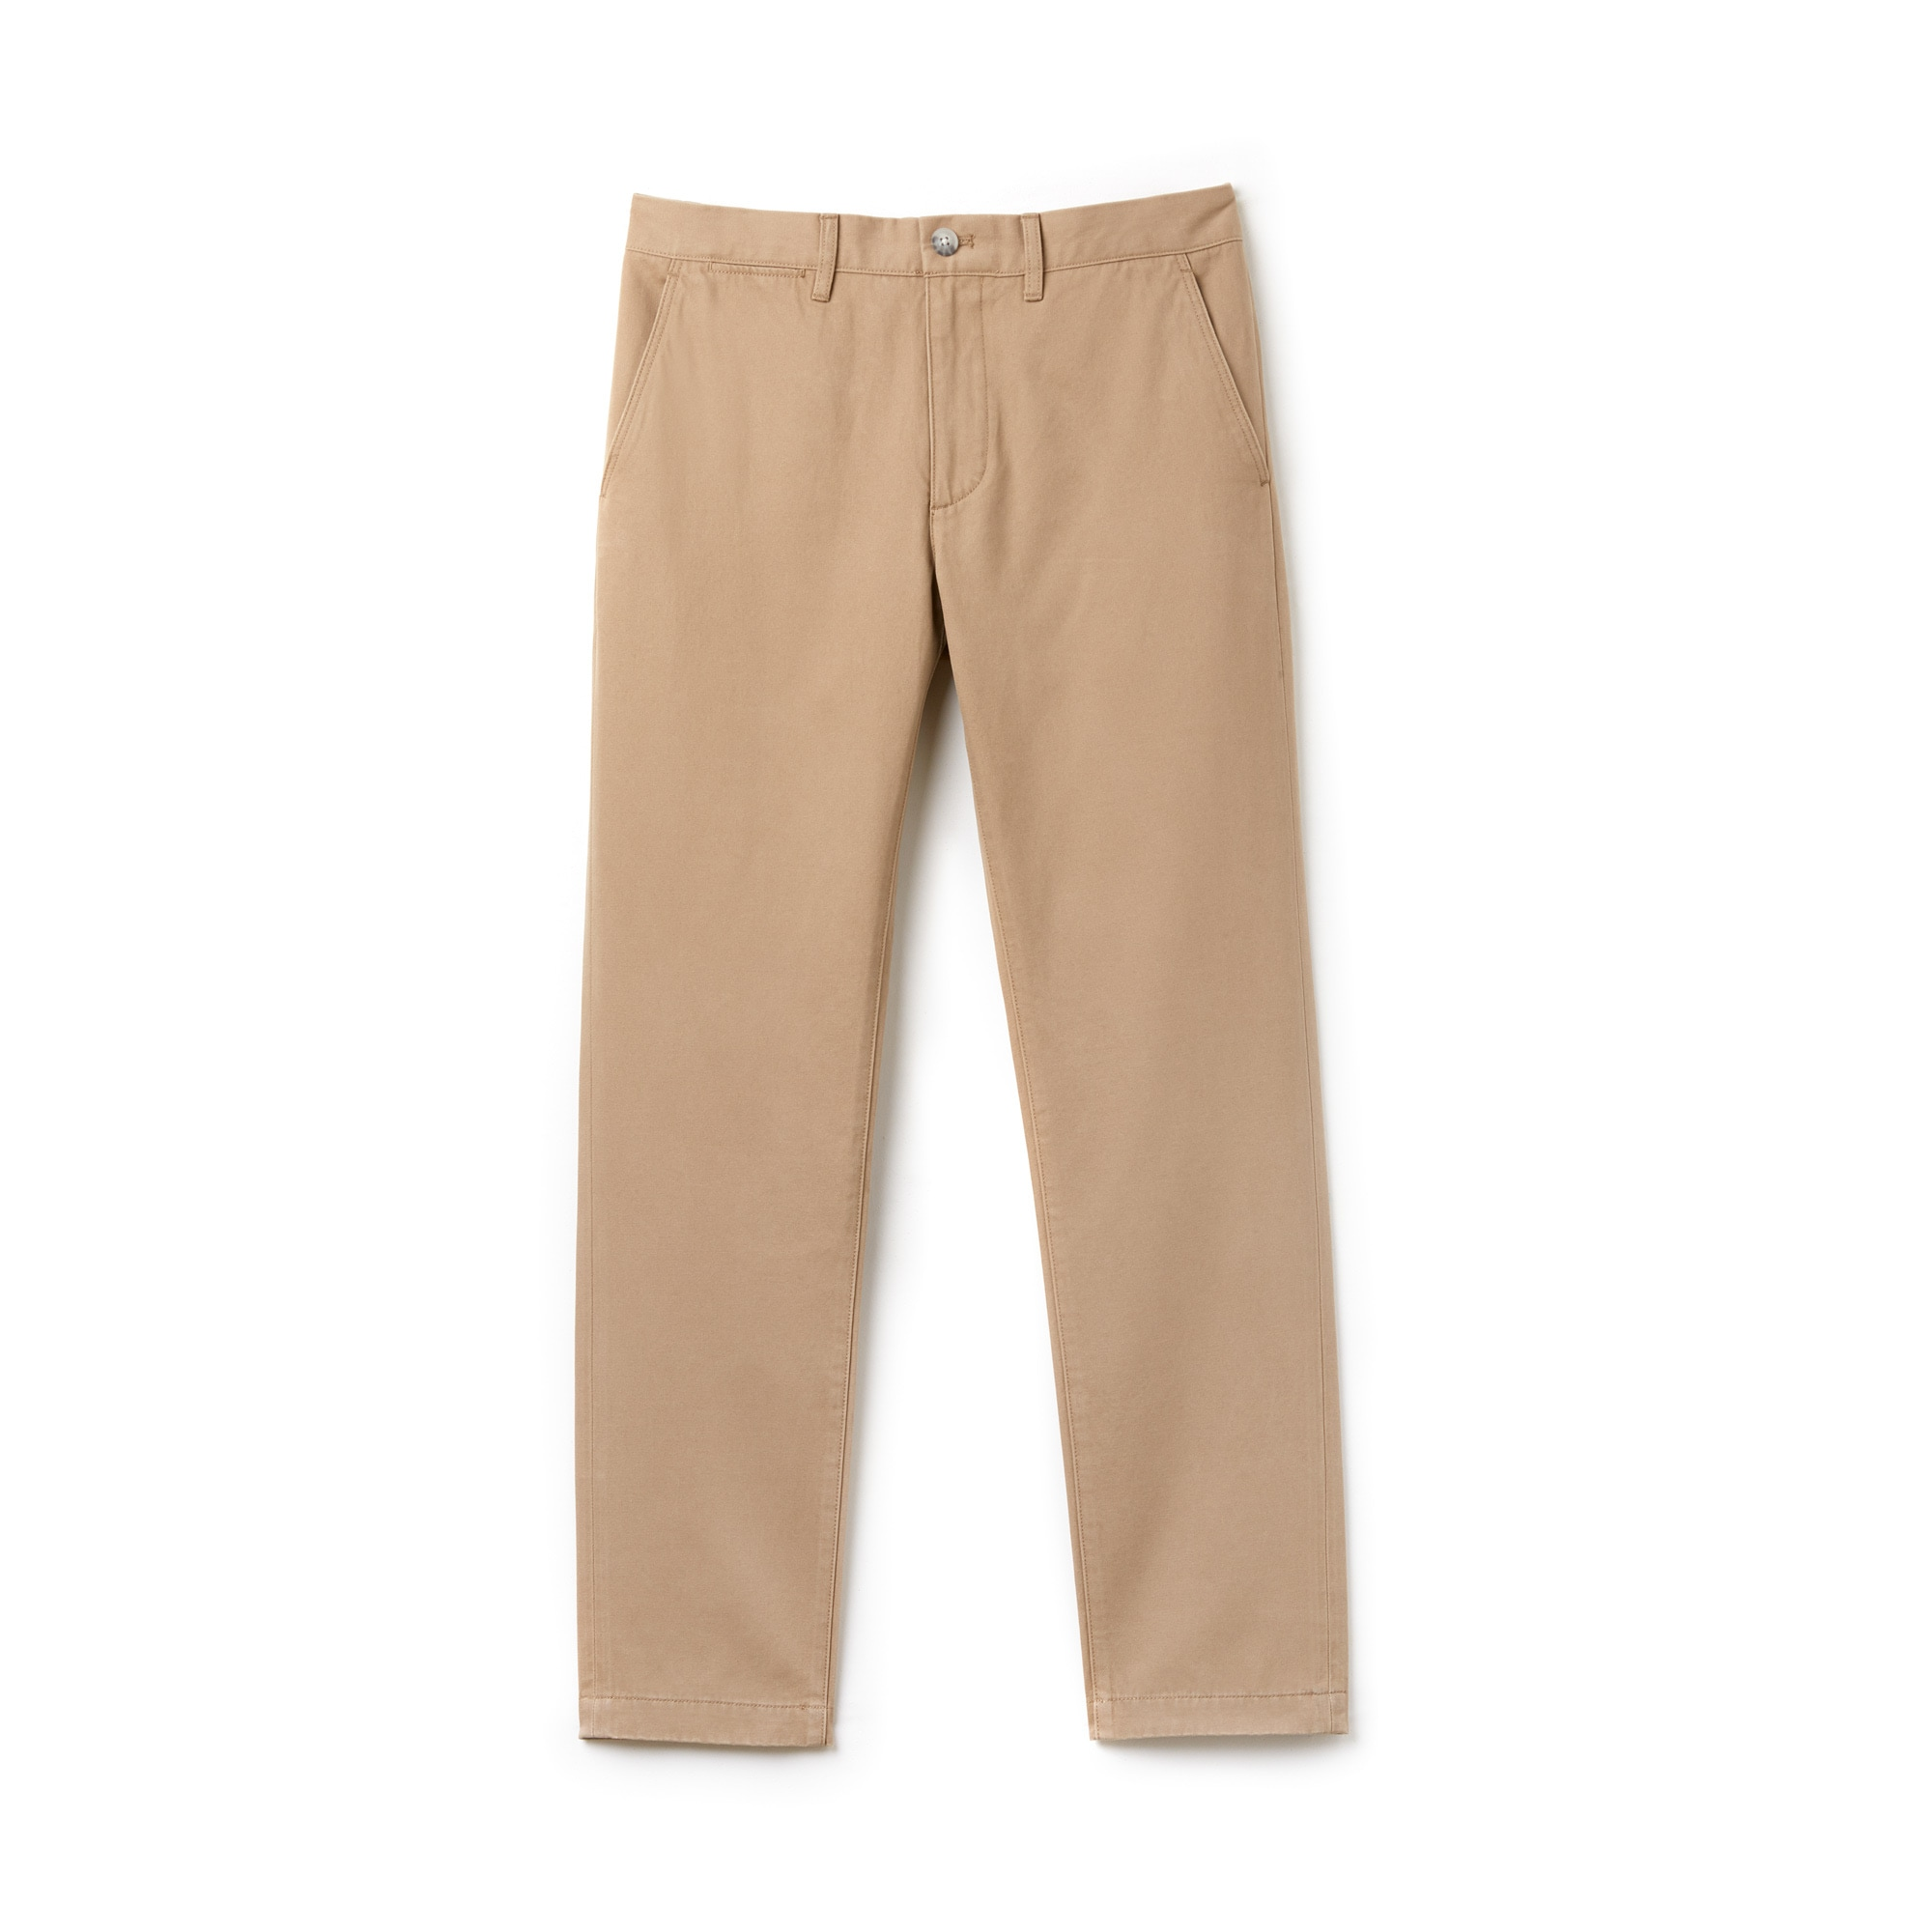 Pantalón chino regular fit de gabardina de algodón lisa